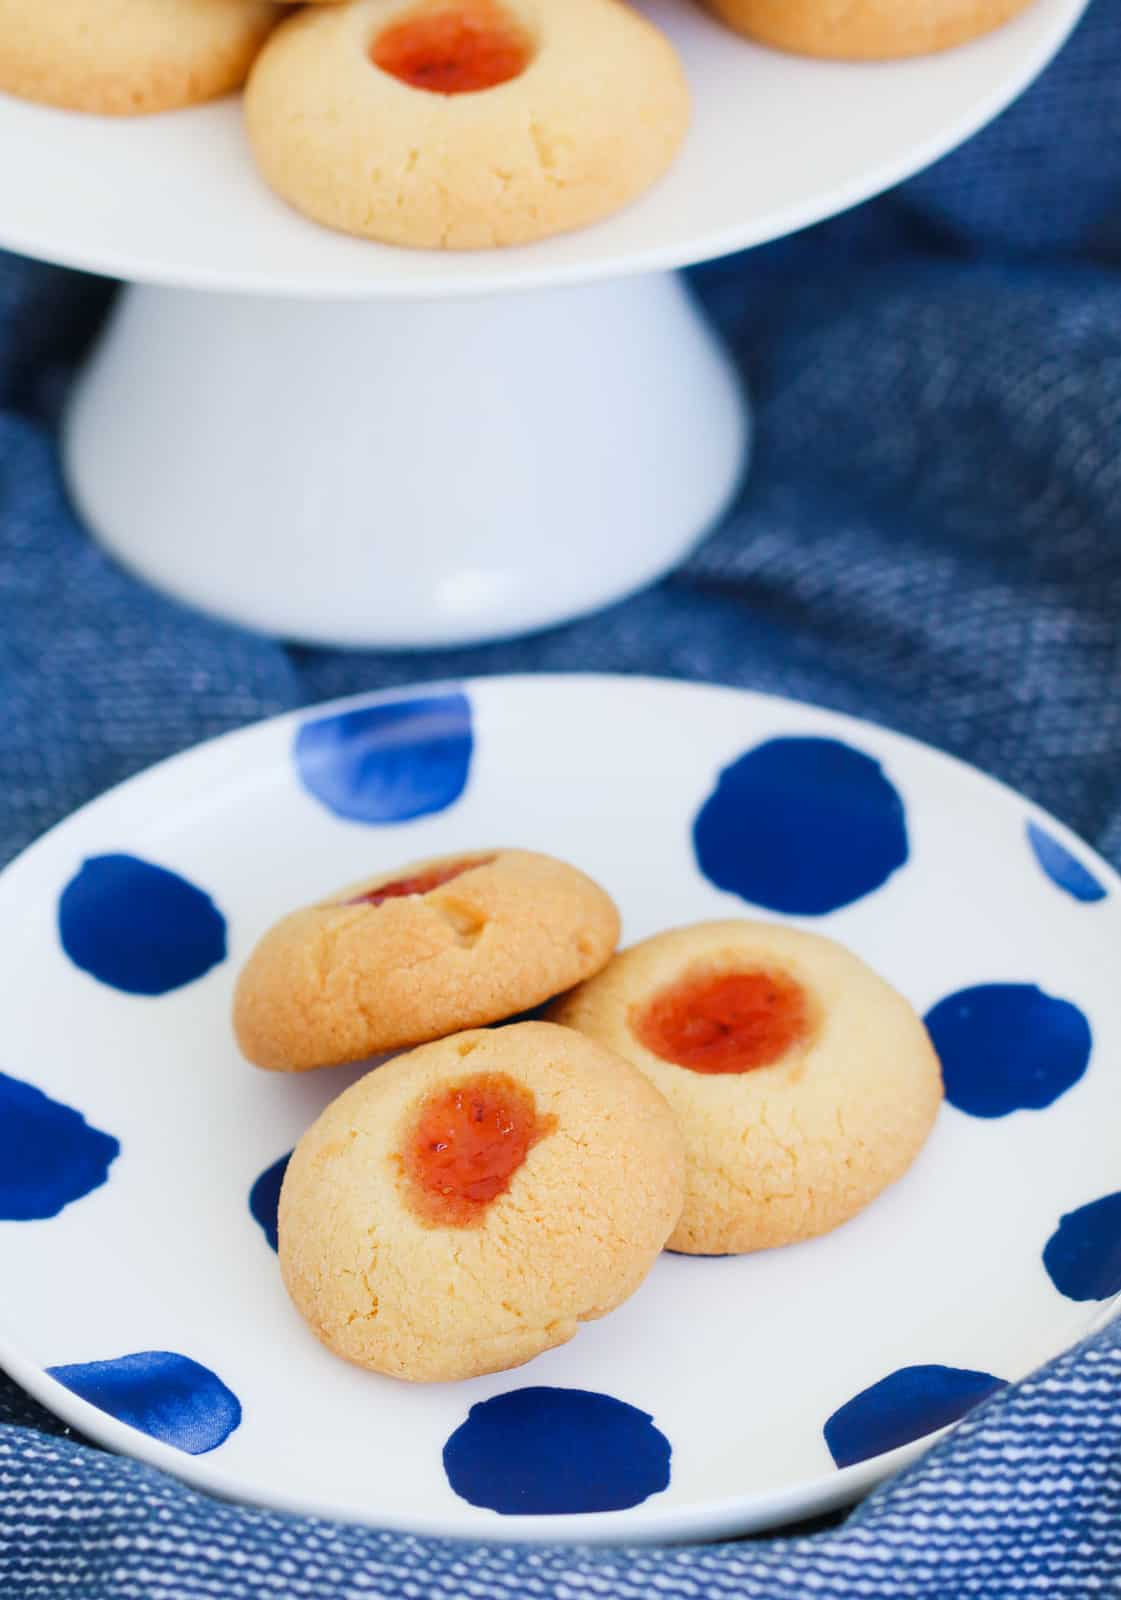 Jam cookies on a blue and white spotted plate.